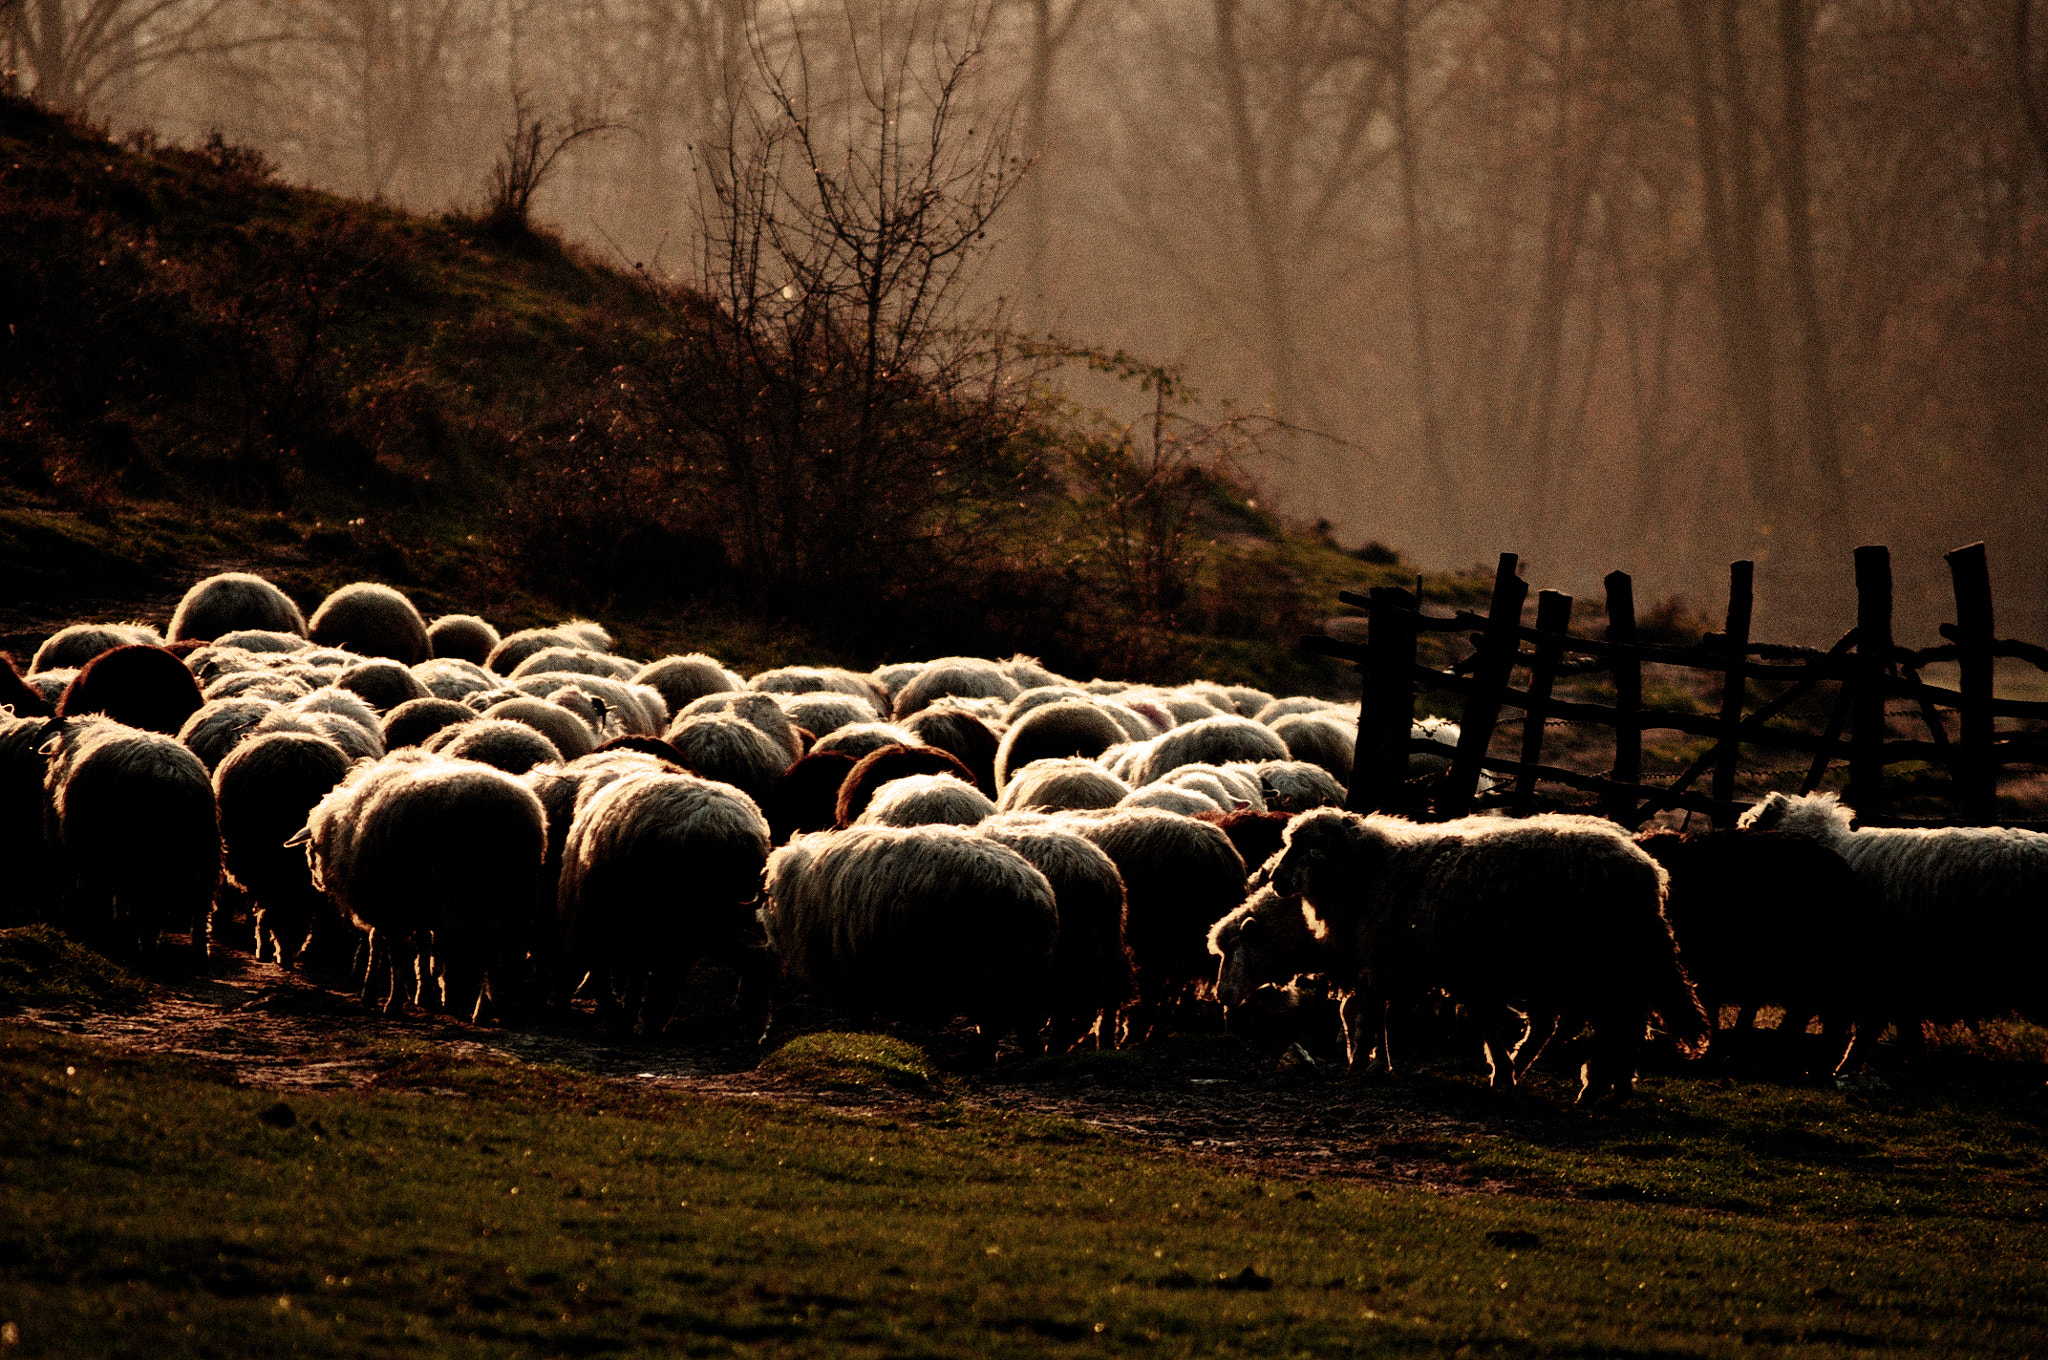 Photograph Sheep by Olivia Dodon on 500px